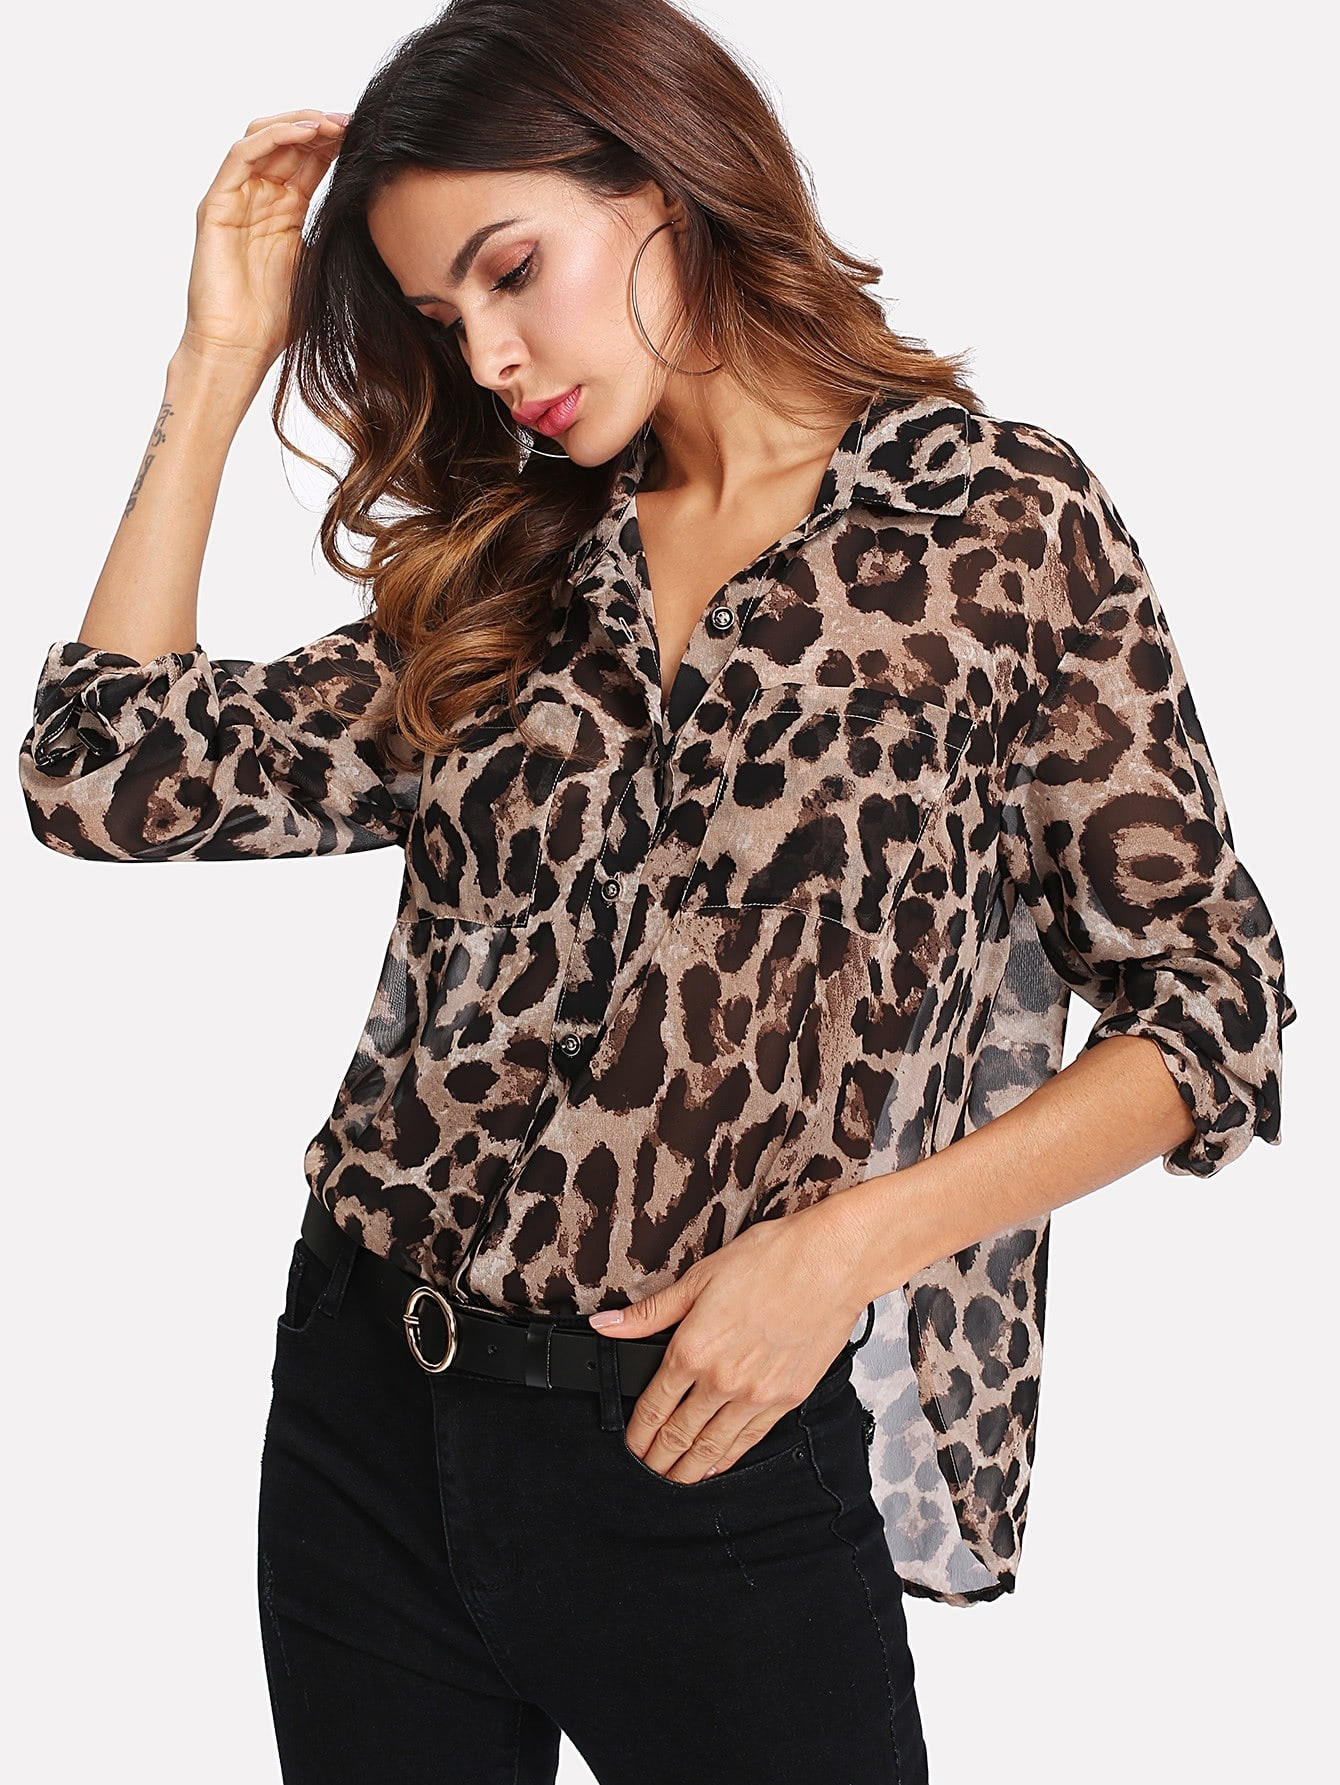 Pocket Patch Curved Hem Leopard Print Shirt pocket patched plaid curved hem shirt dress